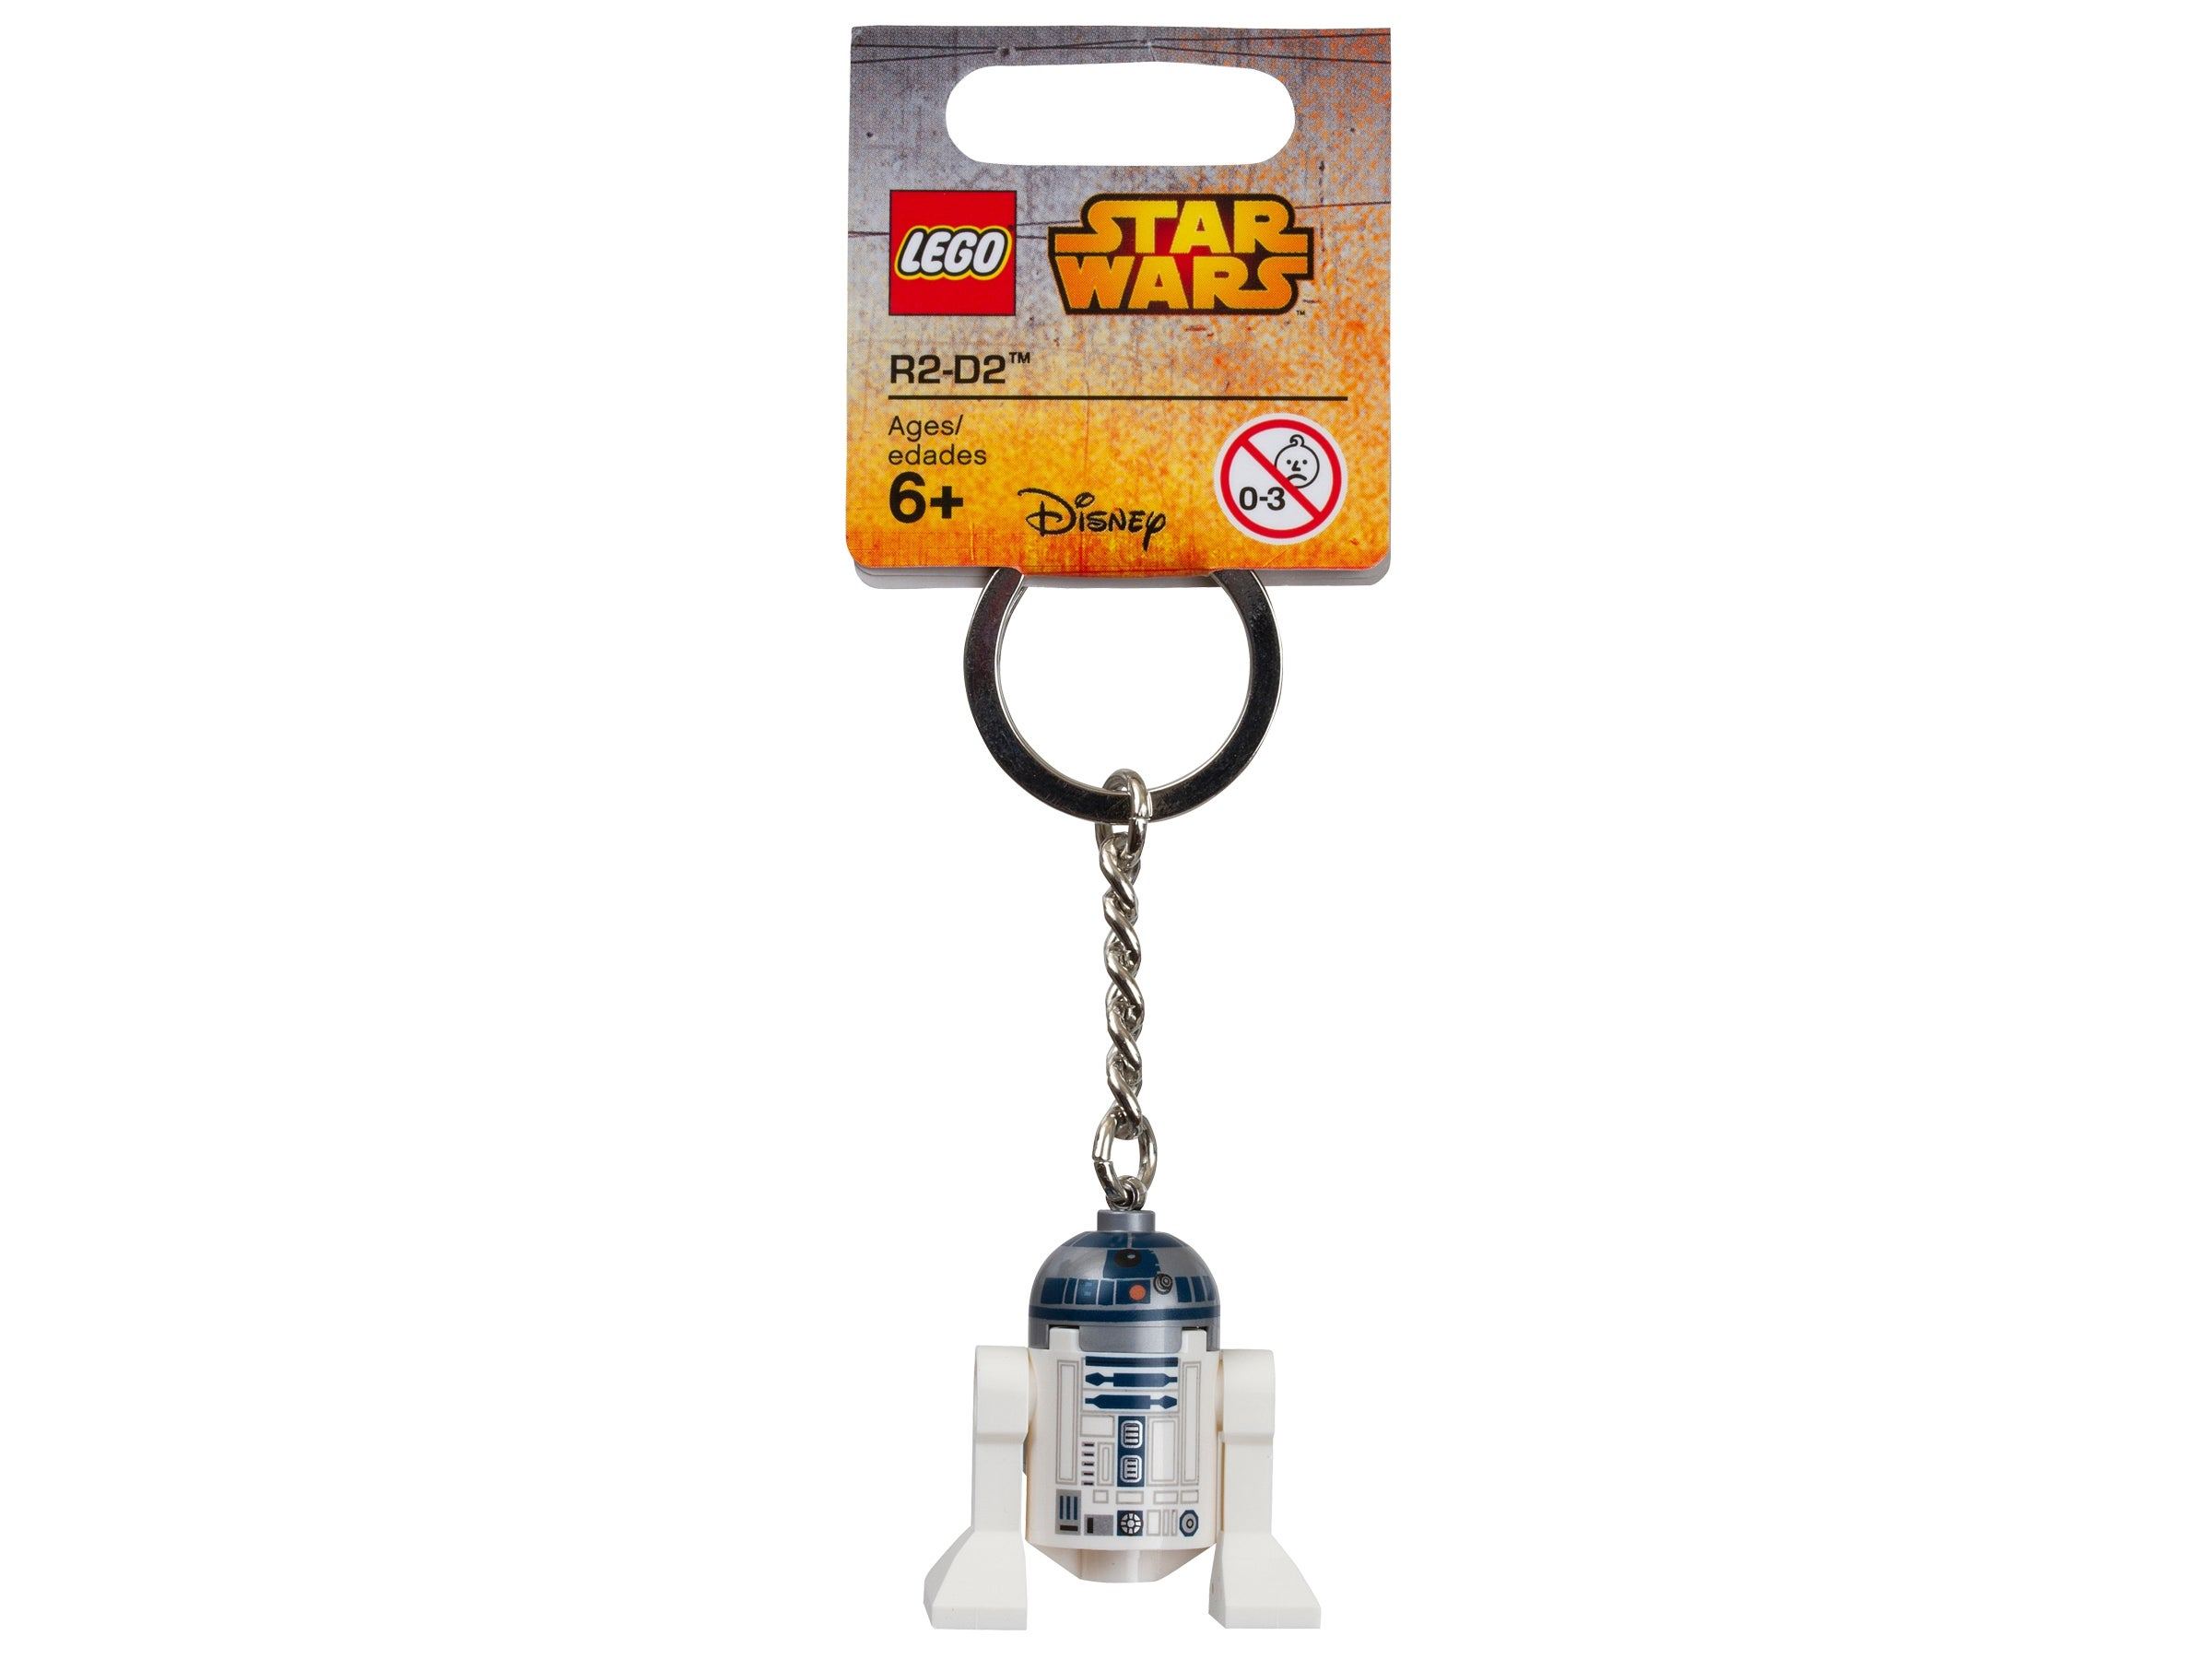 Genuine Lego Star Wars R2-D2